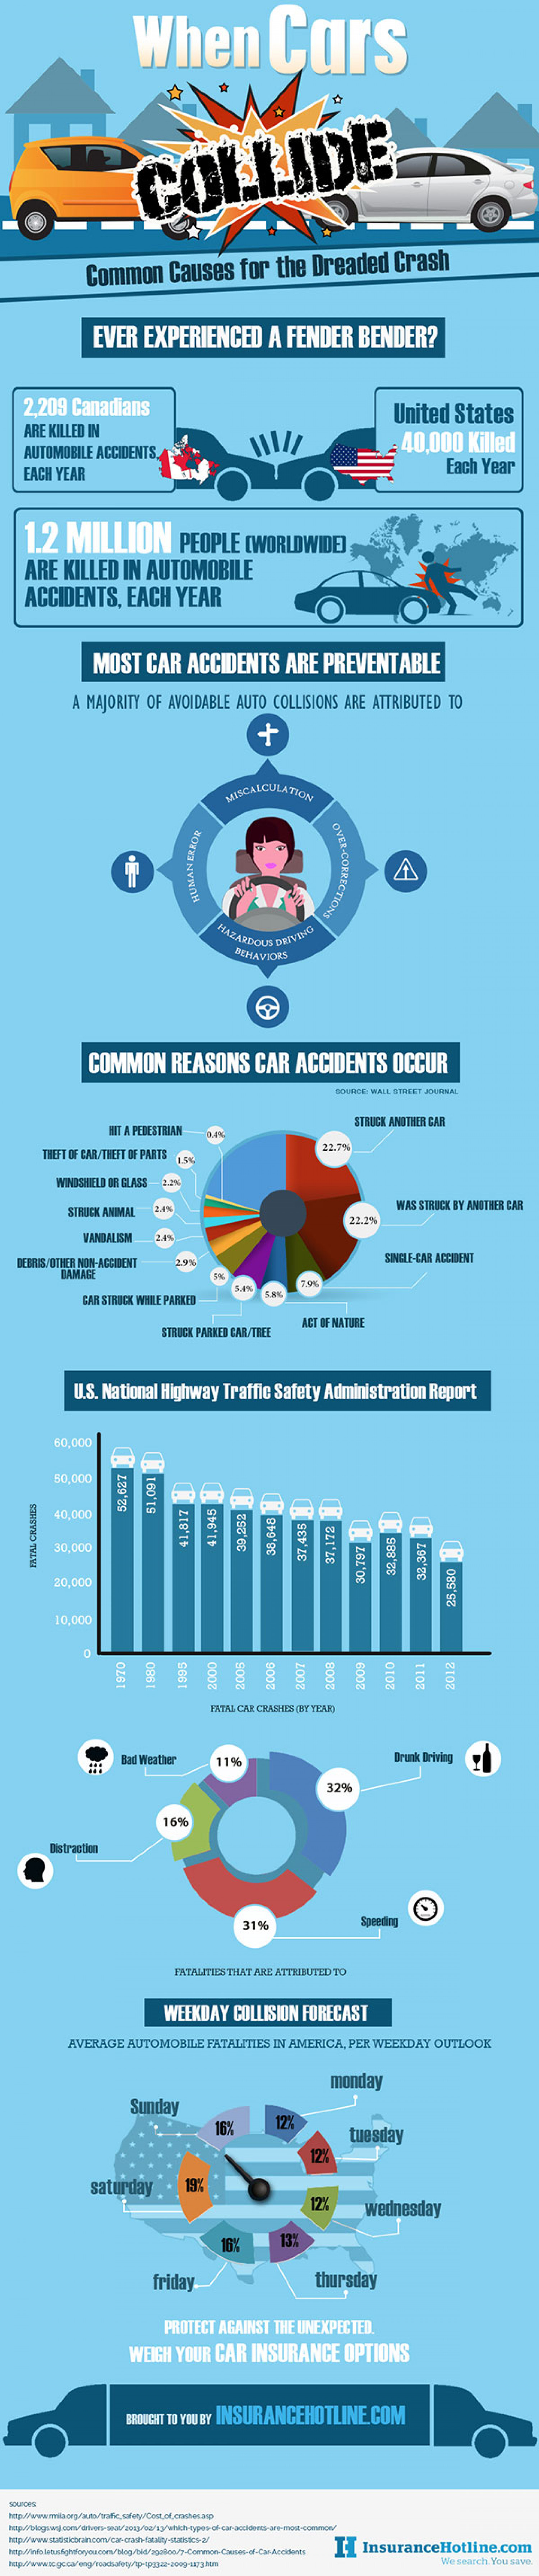 When Cars Collide: Common Causes for the Dreaded Crash Infographic